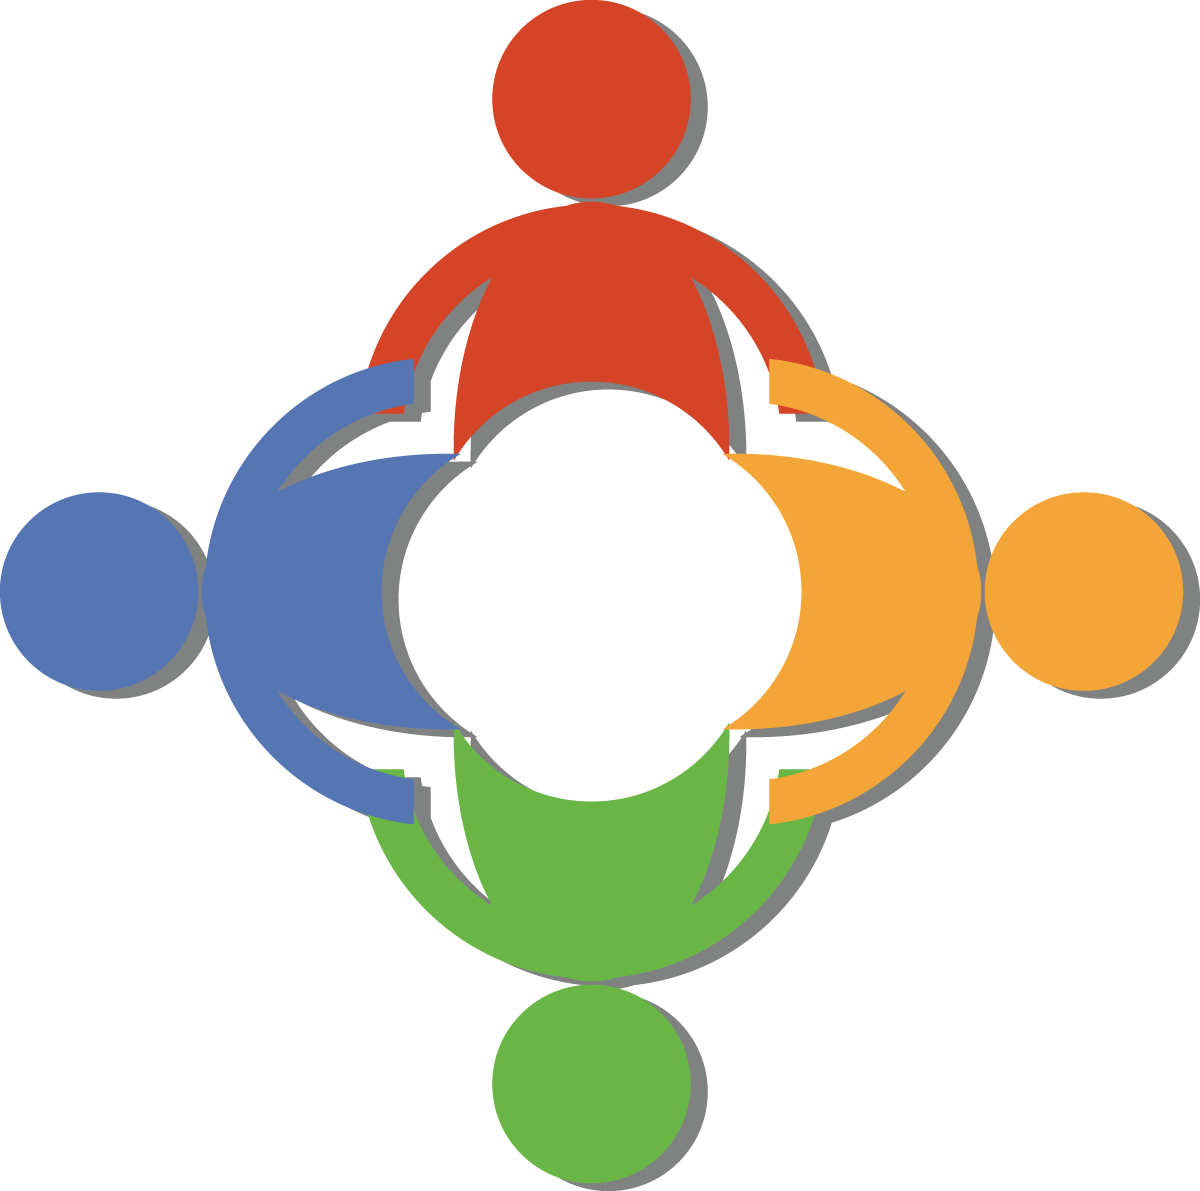 7-Free-Teamwork-Clip-Art-Of-A-Circle-Of-Diverse-People-Holding-Hands